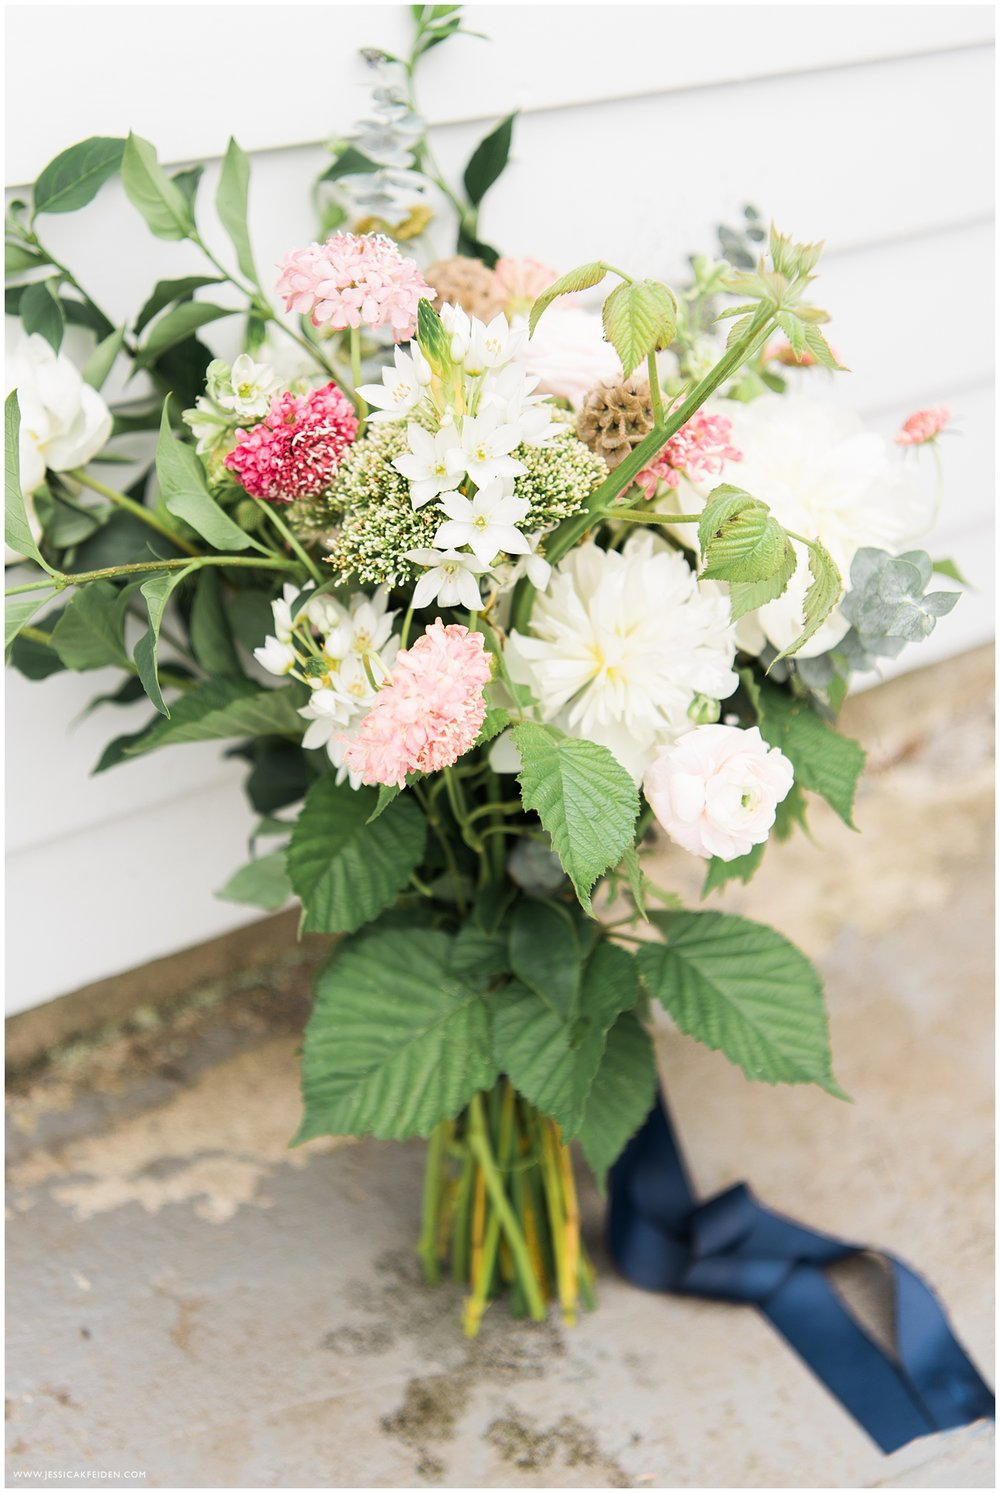 Jessica K Feiden Photography_Top 5 Things to Have Ready for Your Wedding Photographer_0005.jpg